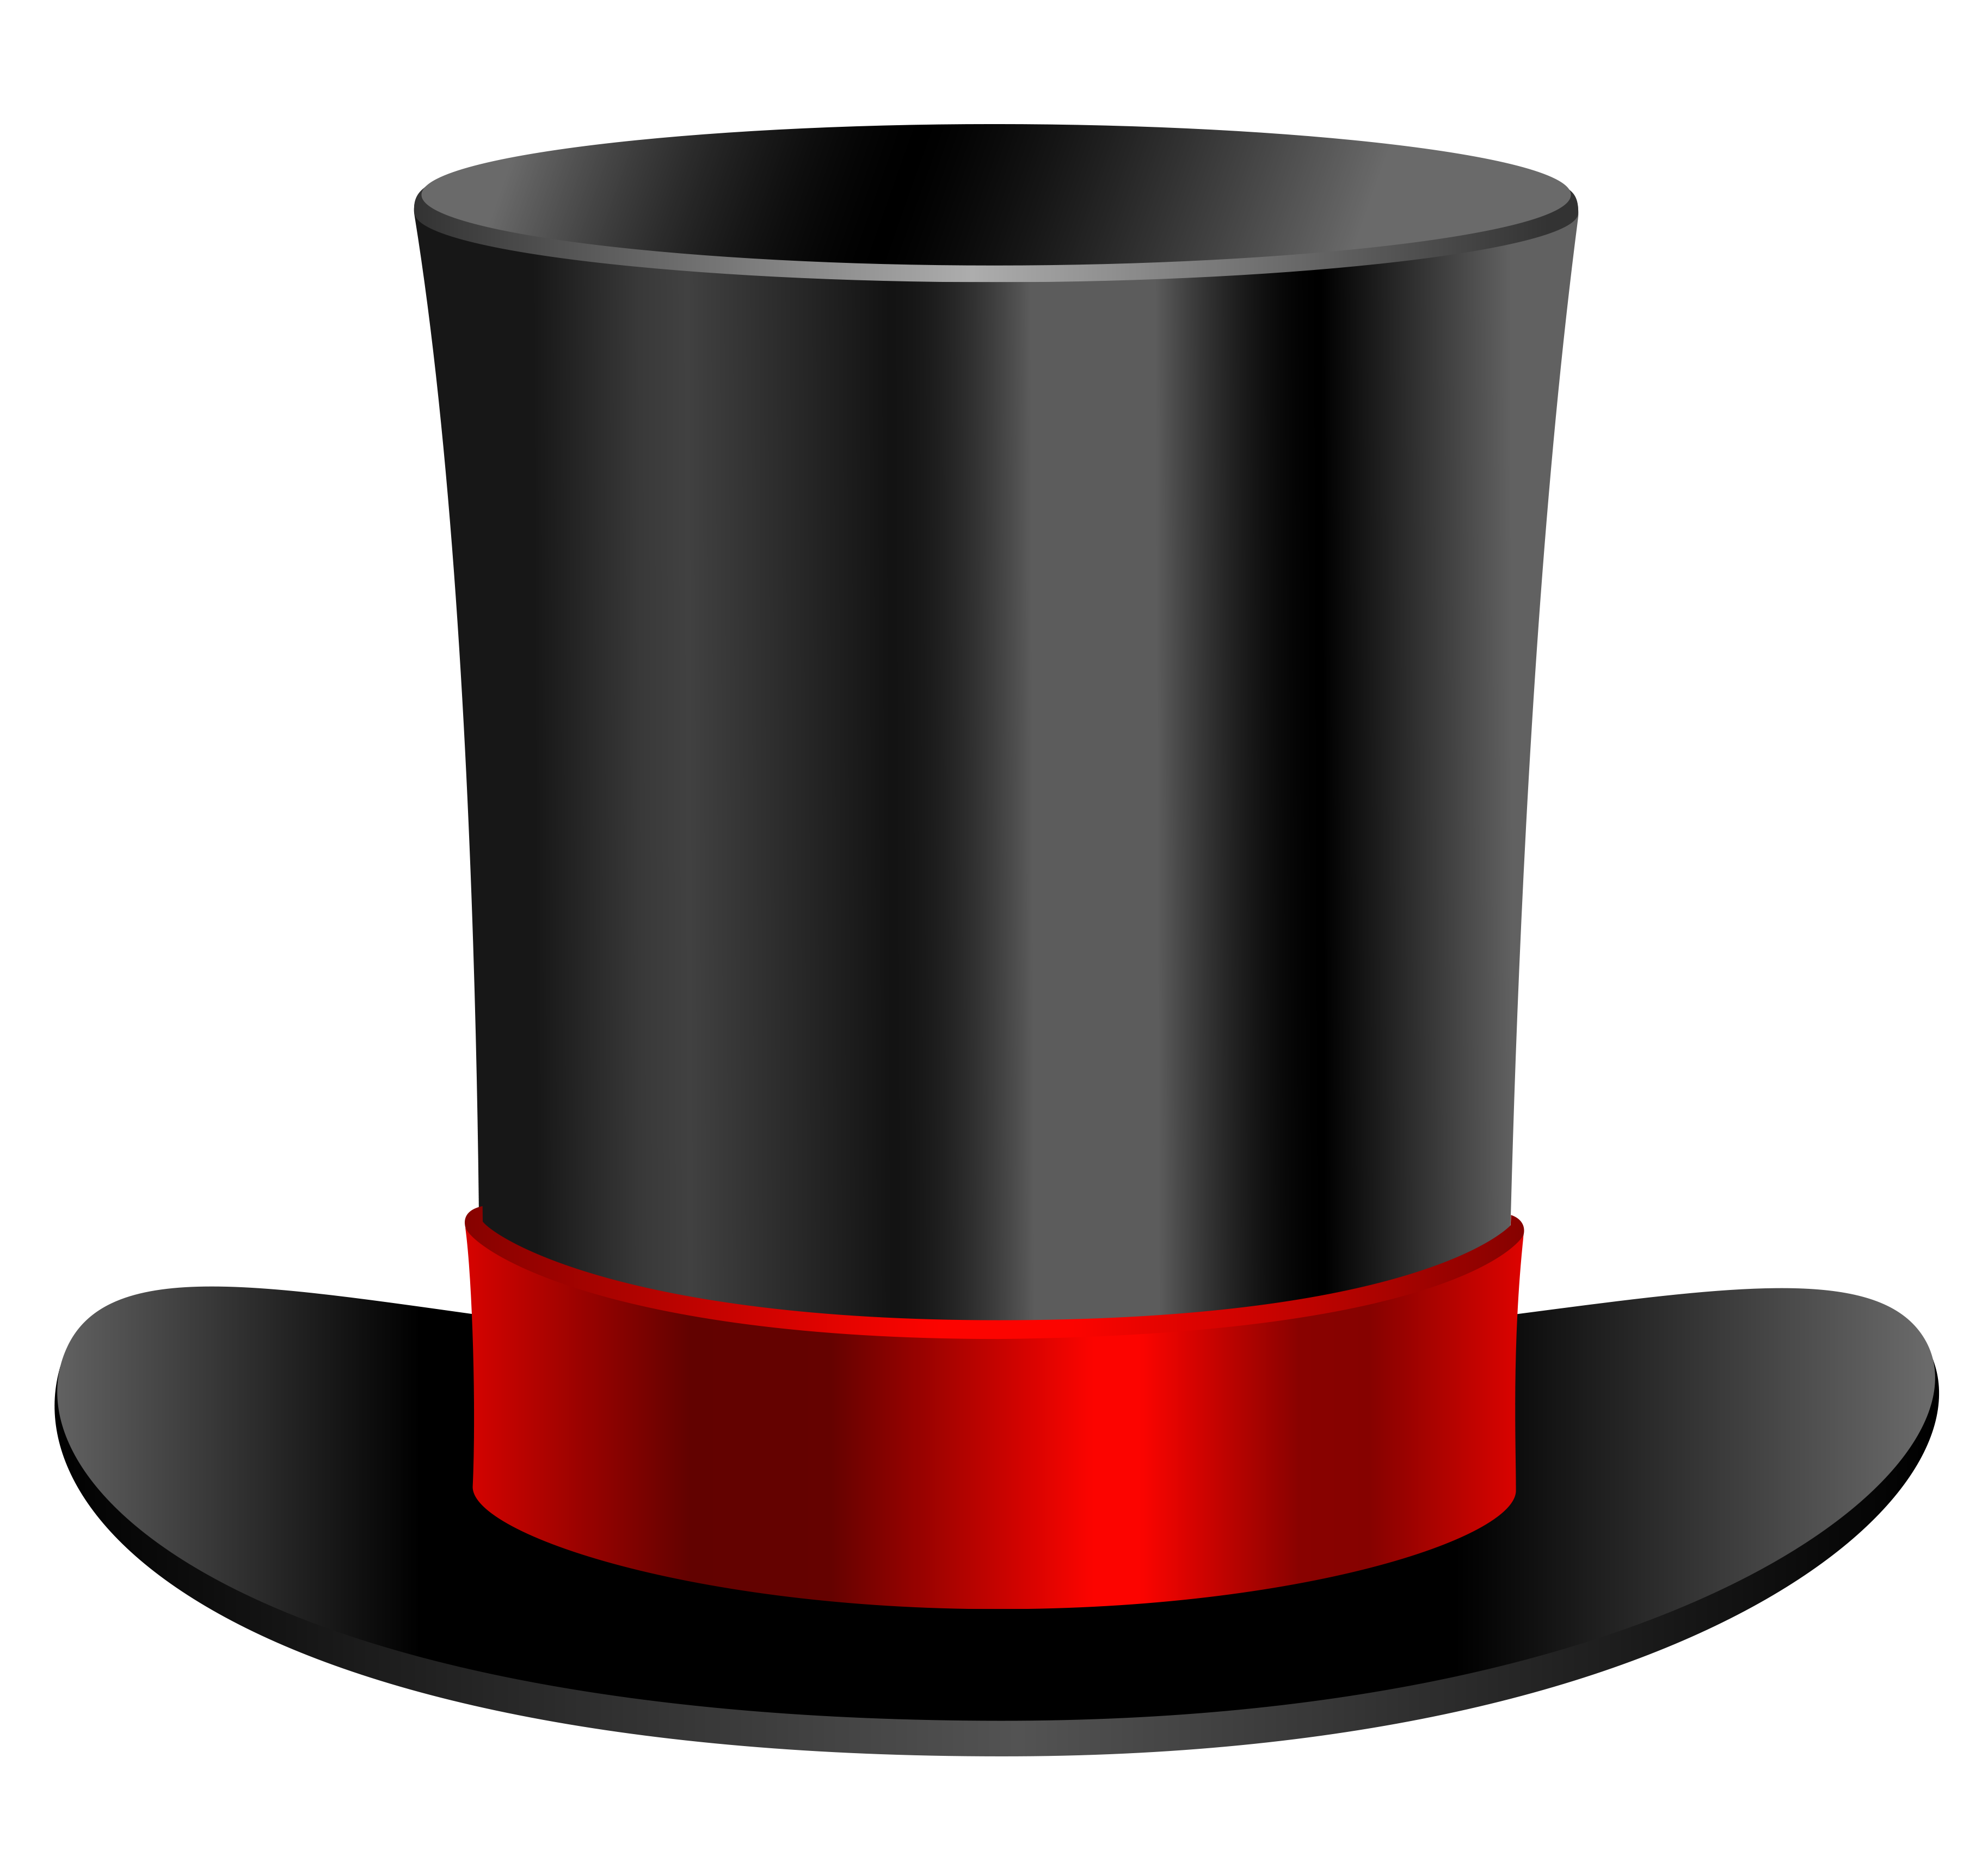 Circus clipart hat Top%20hat%20clipart Clipart Top Clipart Hat